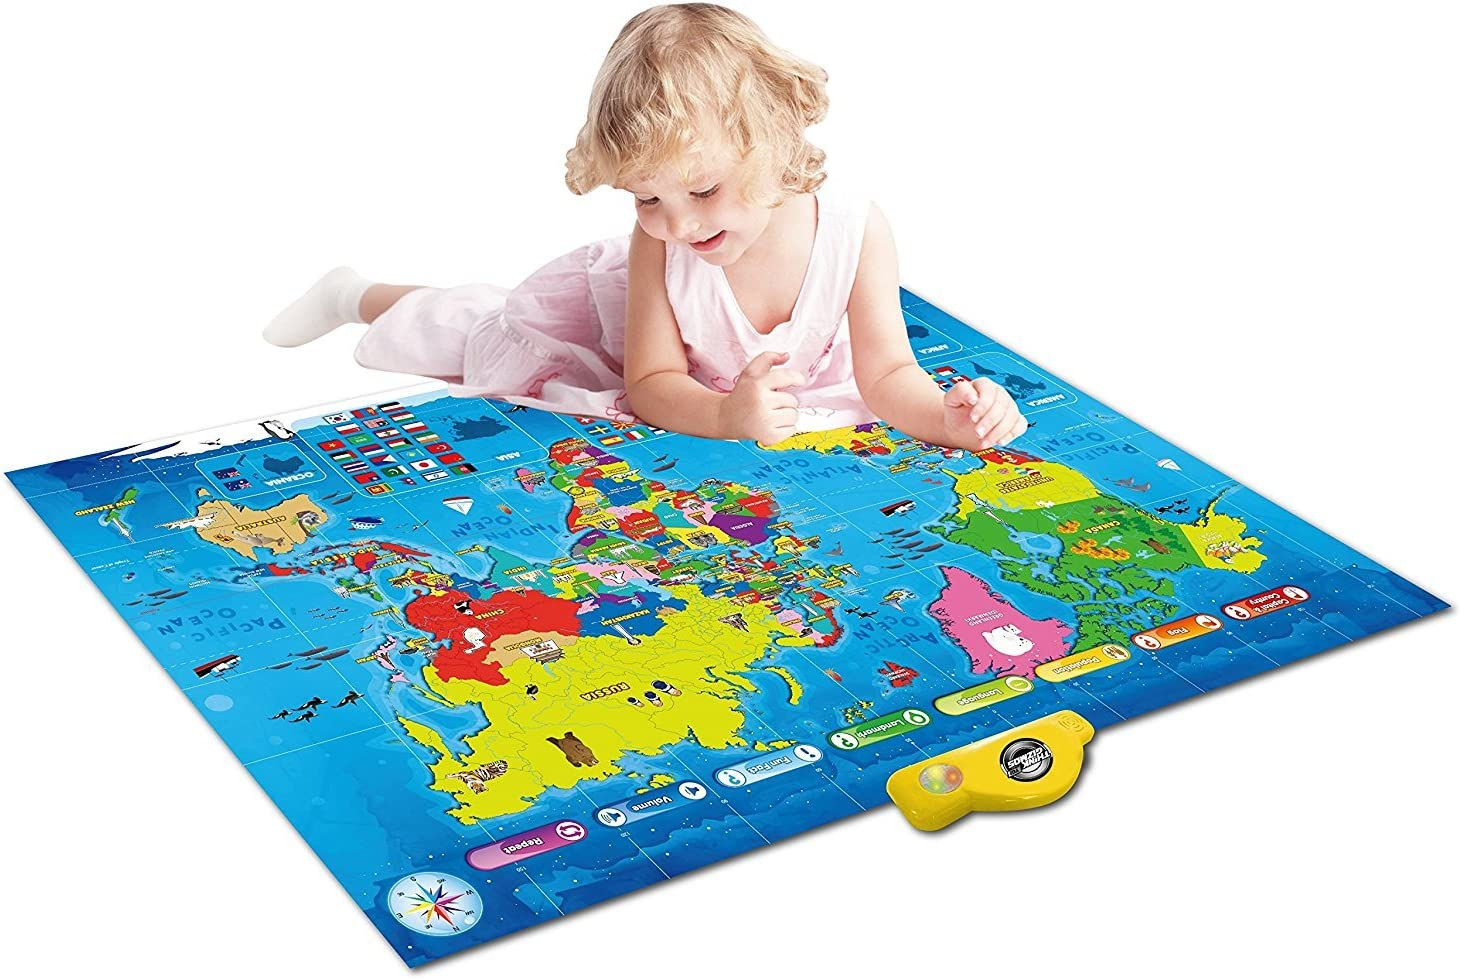 by ThinkGizmos Ideal Interactive Learning Toy Gift for Boys /& Girls Aged 5,6,7,8,9,10 Push Interactive Talking World Map for Kids TG661 Learn and Discover Over 1000 Facts About Our World